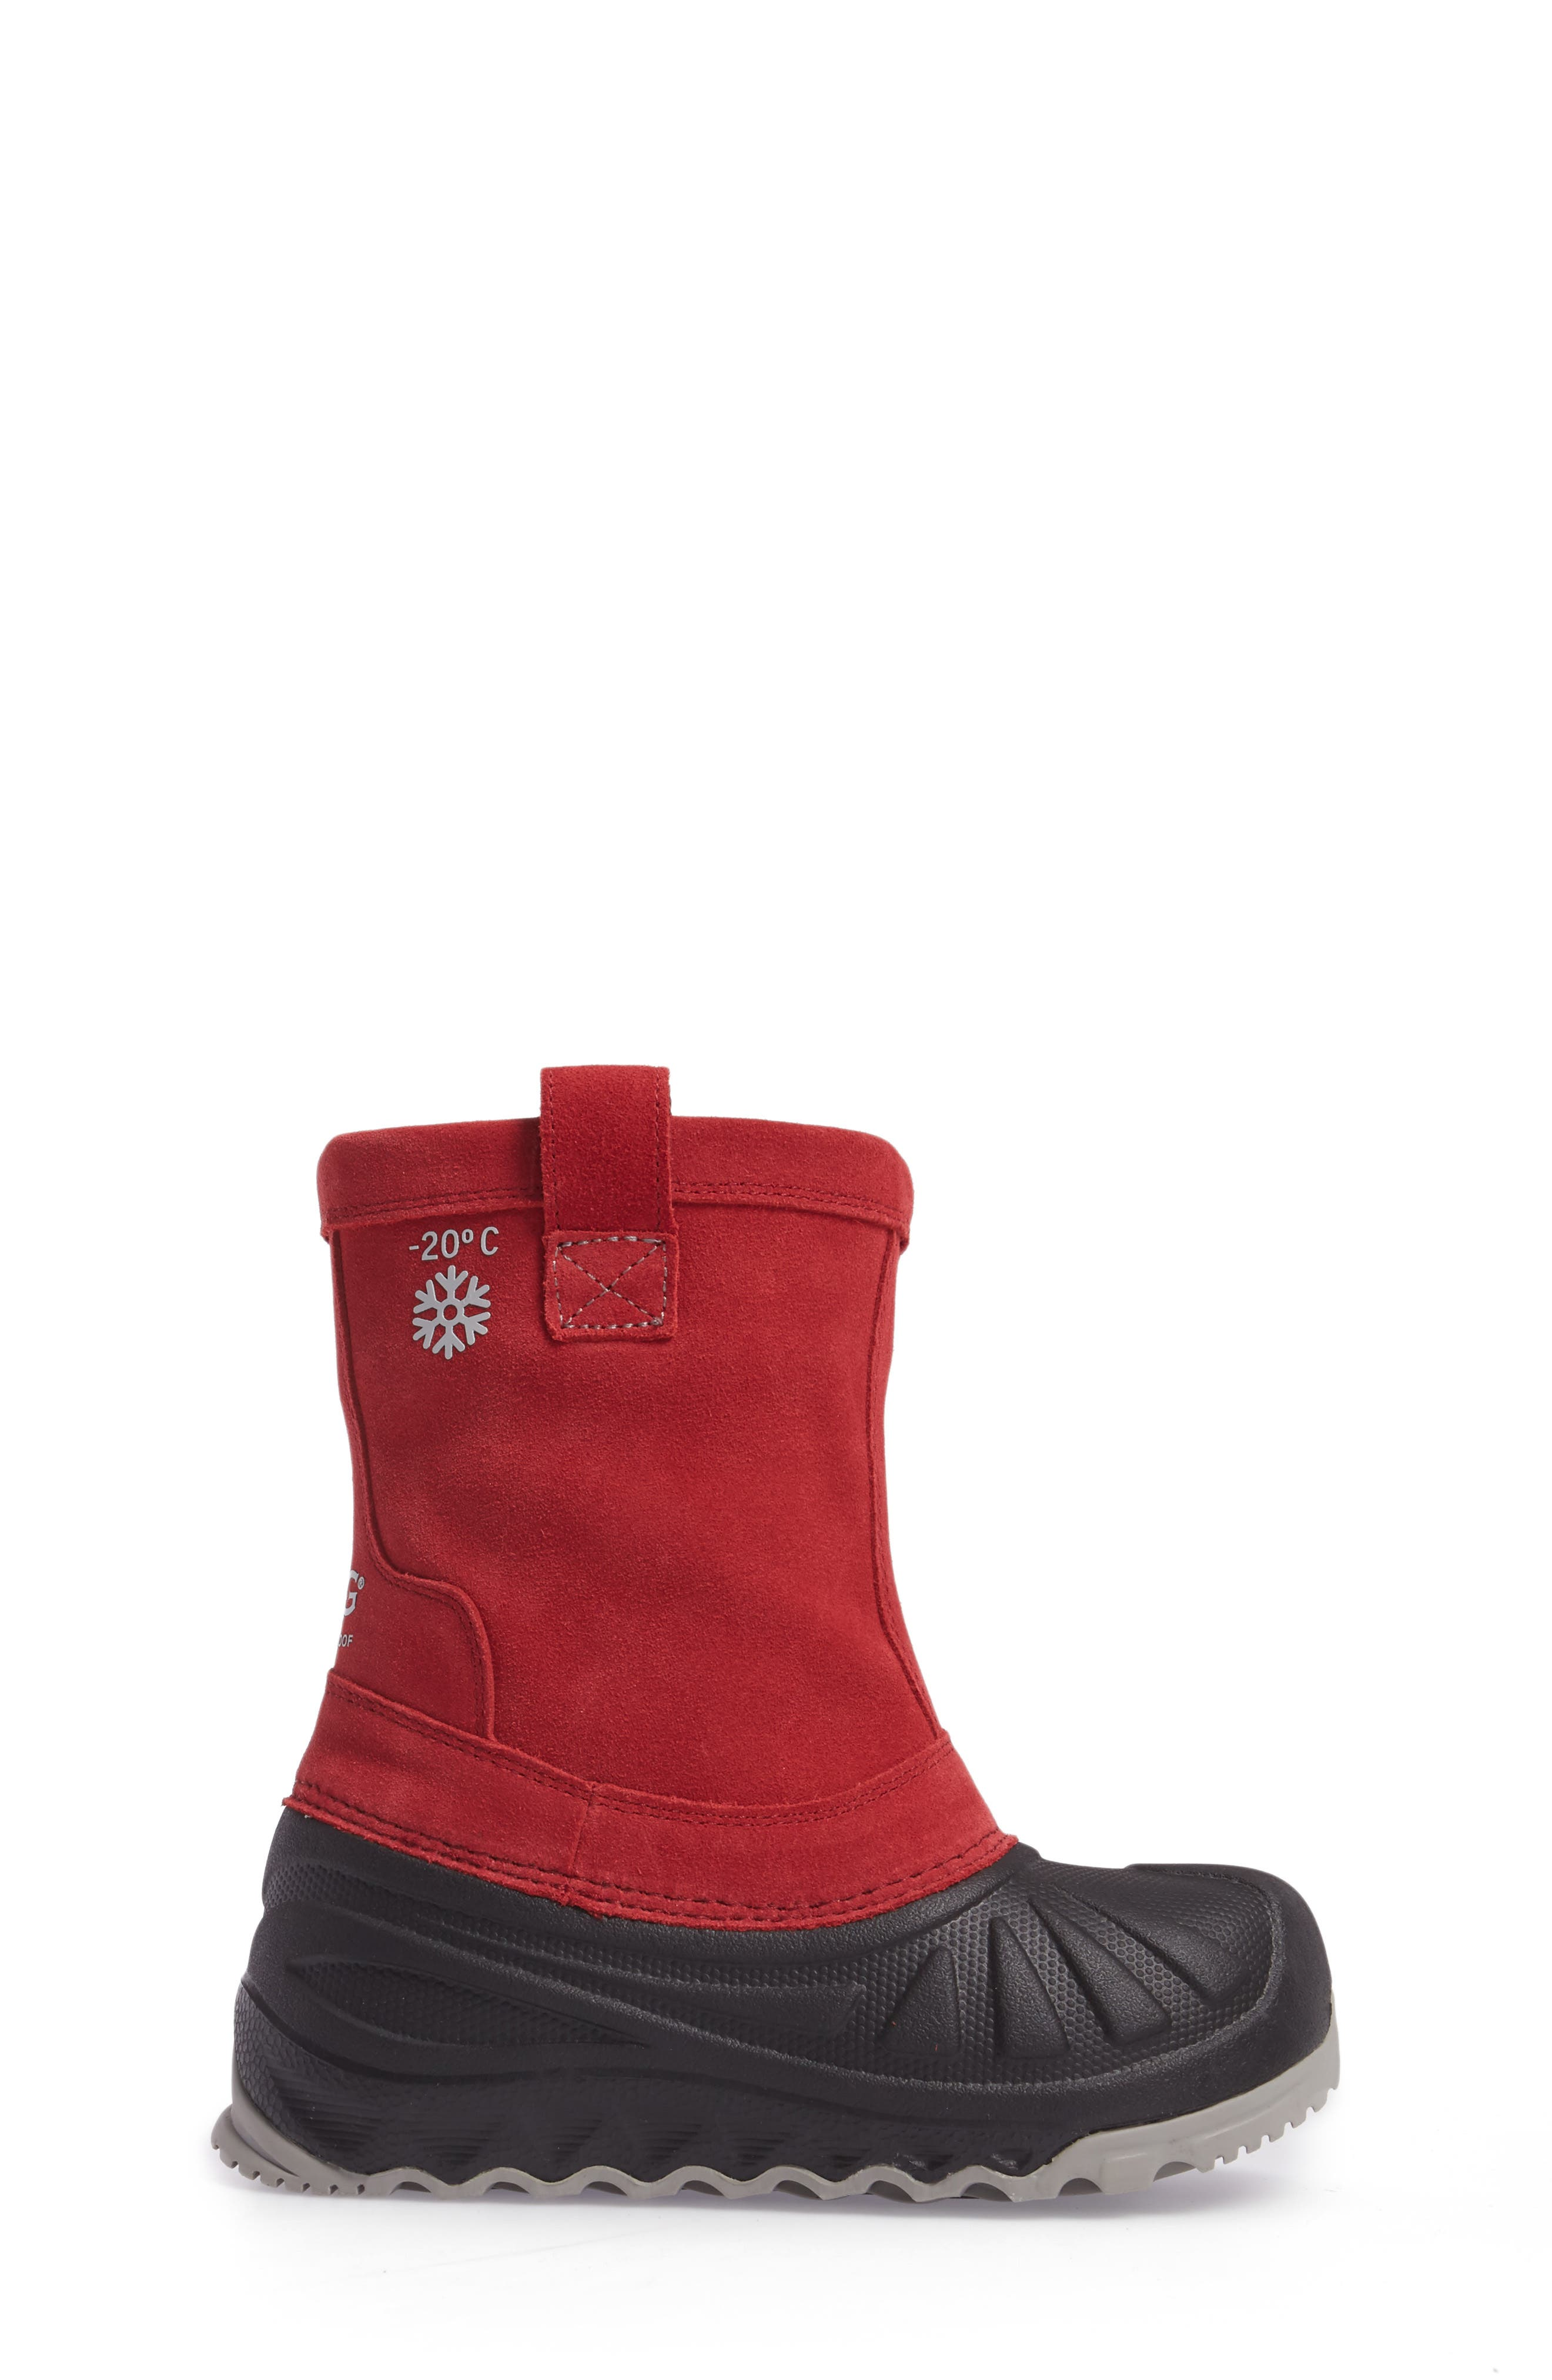 Evertt Waterproof Thinsulate<sup>™</sup> Insulated Snow Boot,                             Alternate thumbnail 6, color,